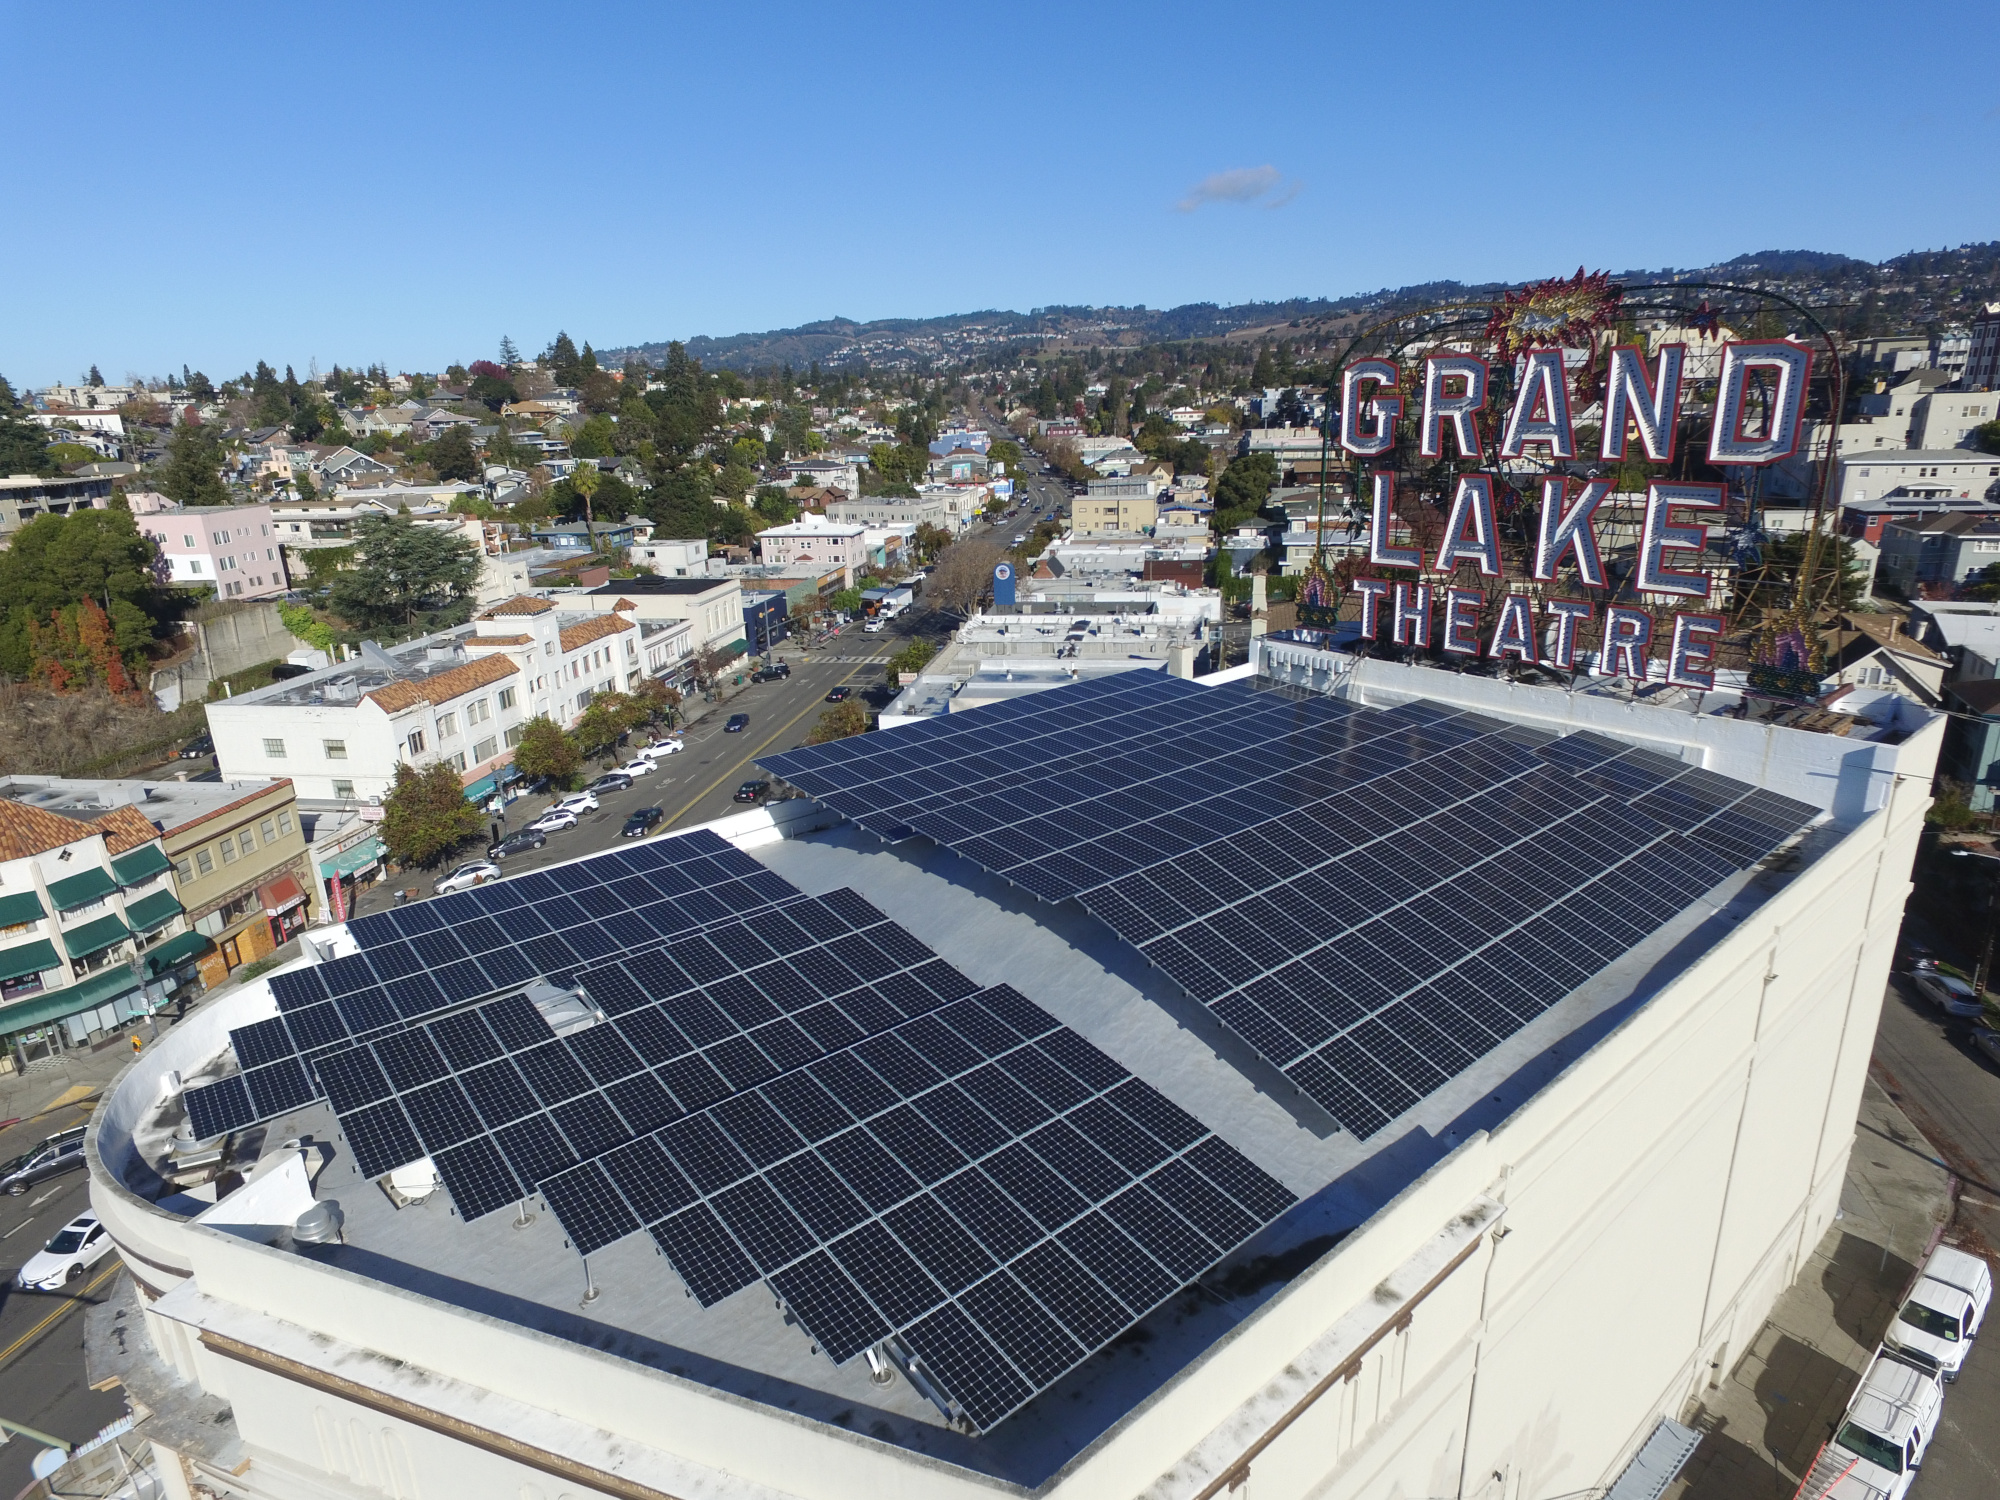 View of commercial solar installation at the iconic Grand Lake Theater in Oakland, California